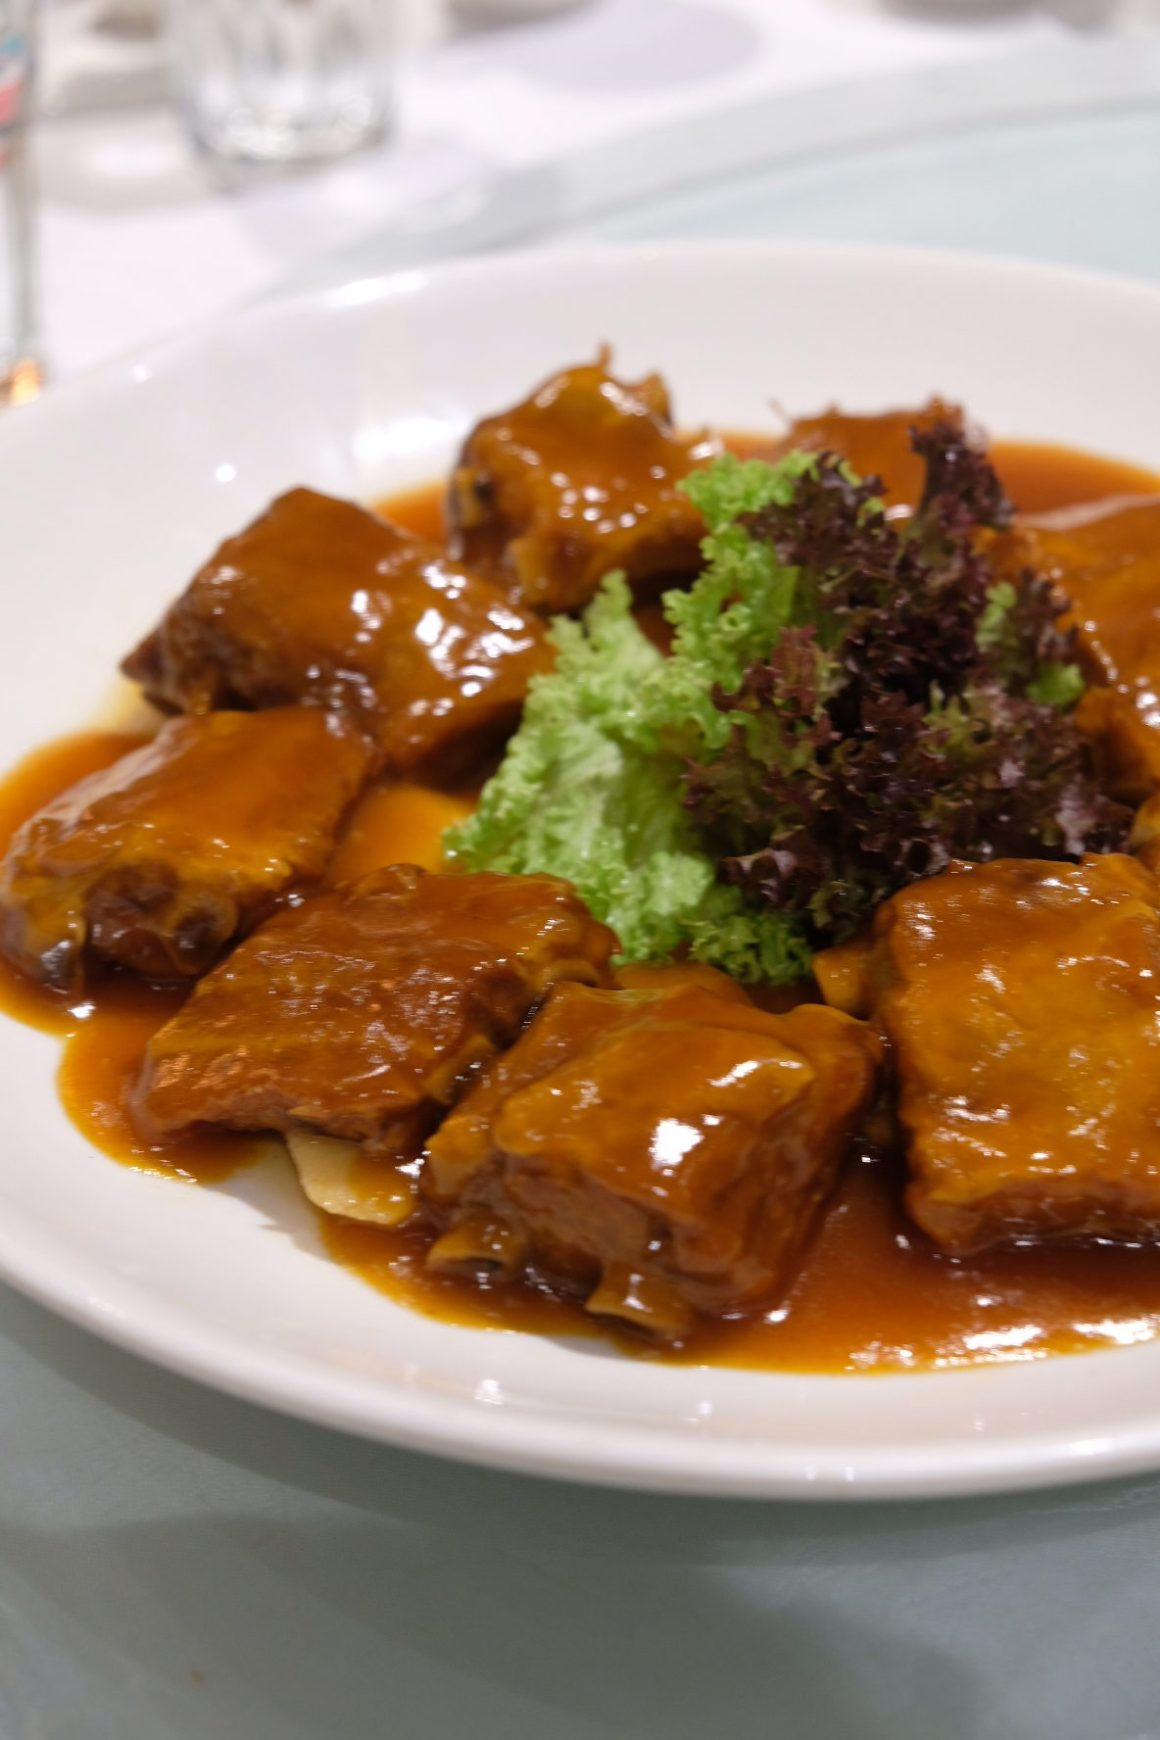 Best restaurants For Your Chinese New Year 2019 Reunion Dinner In Singapore - Putien,  PUTIEN Style Pork Ribs